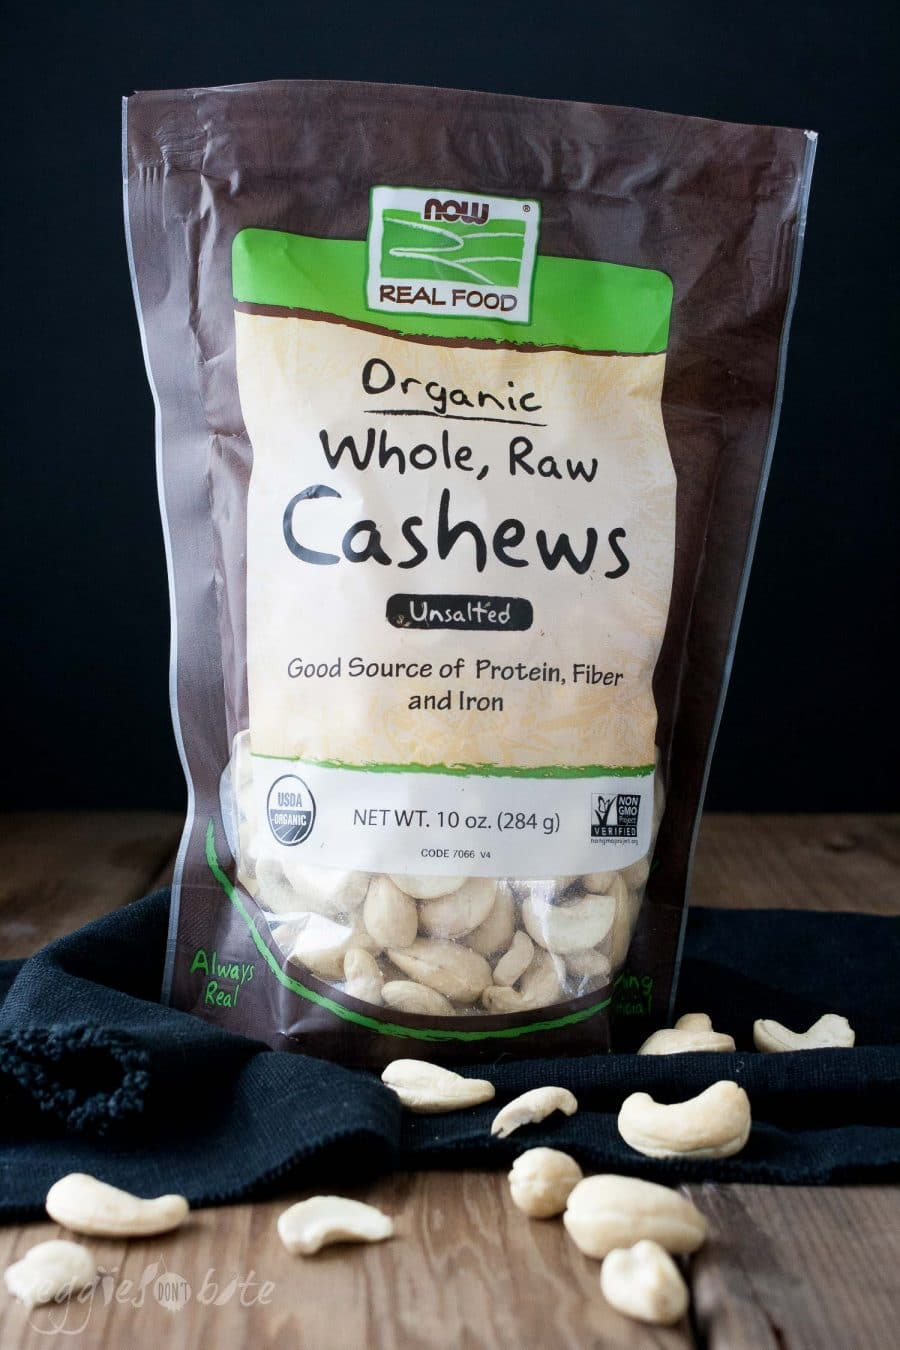 A bag of cashews on a wooden surface used to make a vegan Chocolate Mousse Dessert